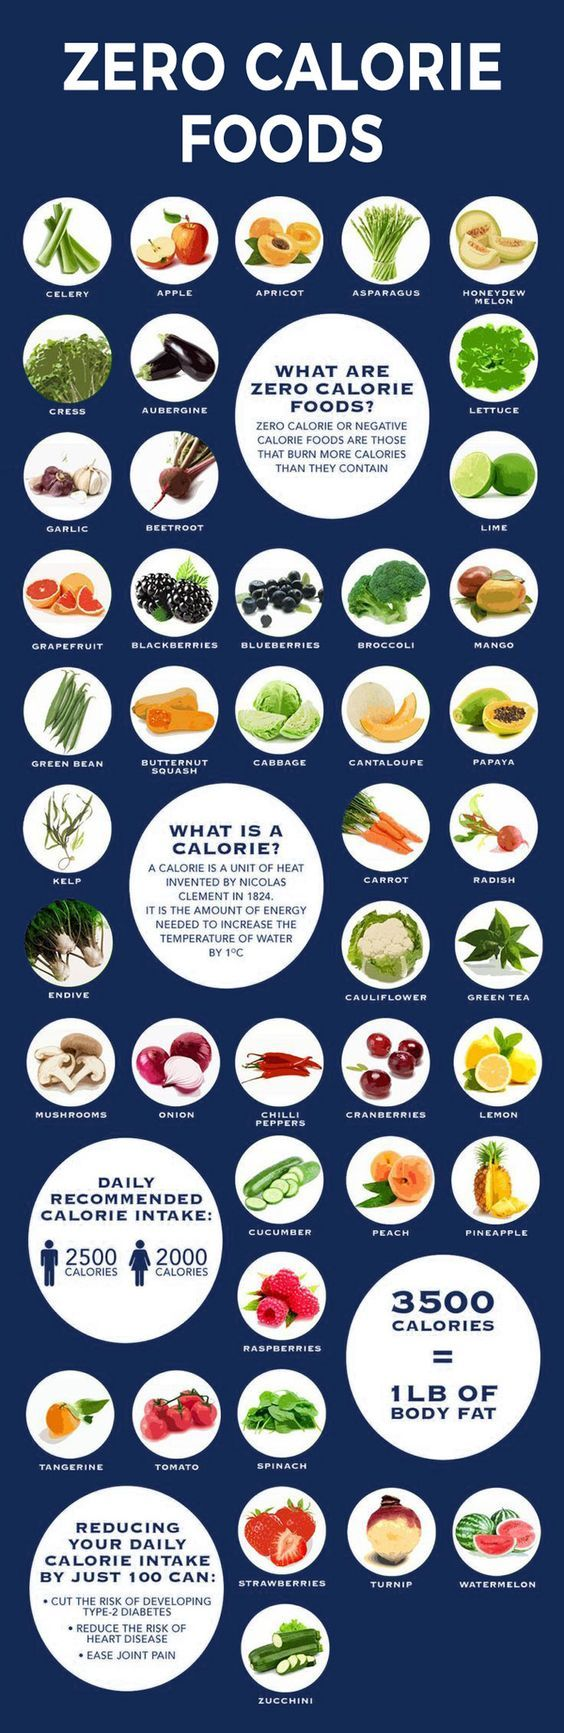 Best Fat Free Foods For Putting On Weight